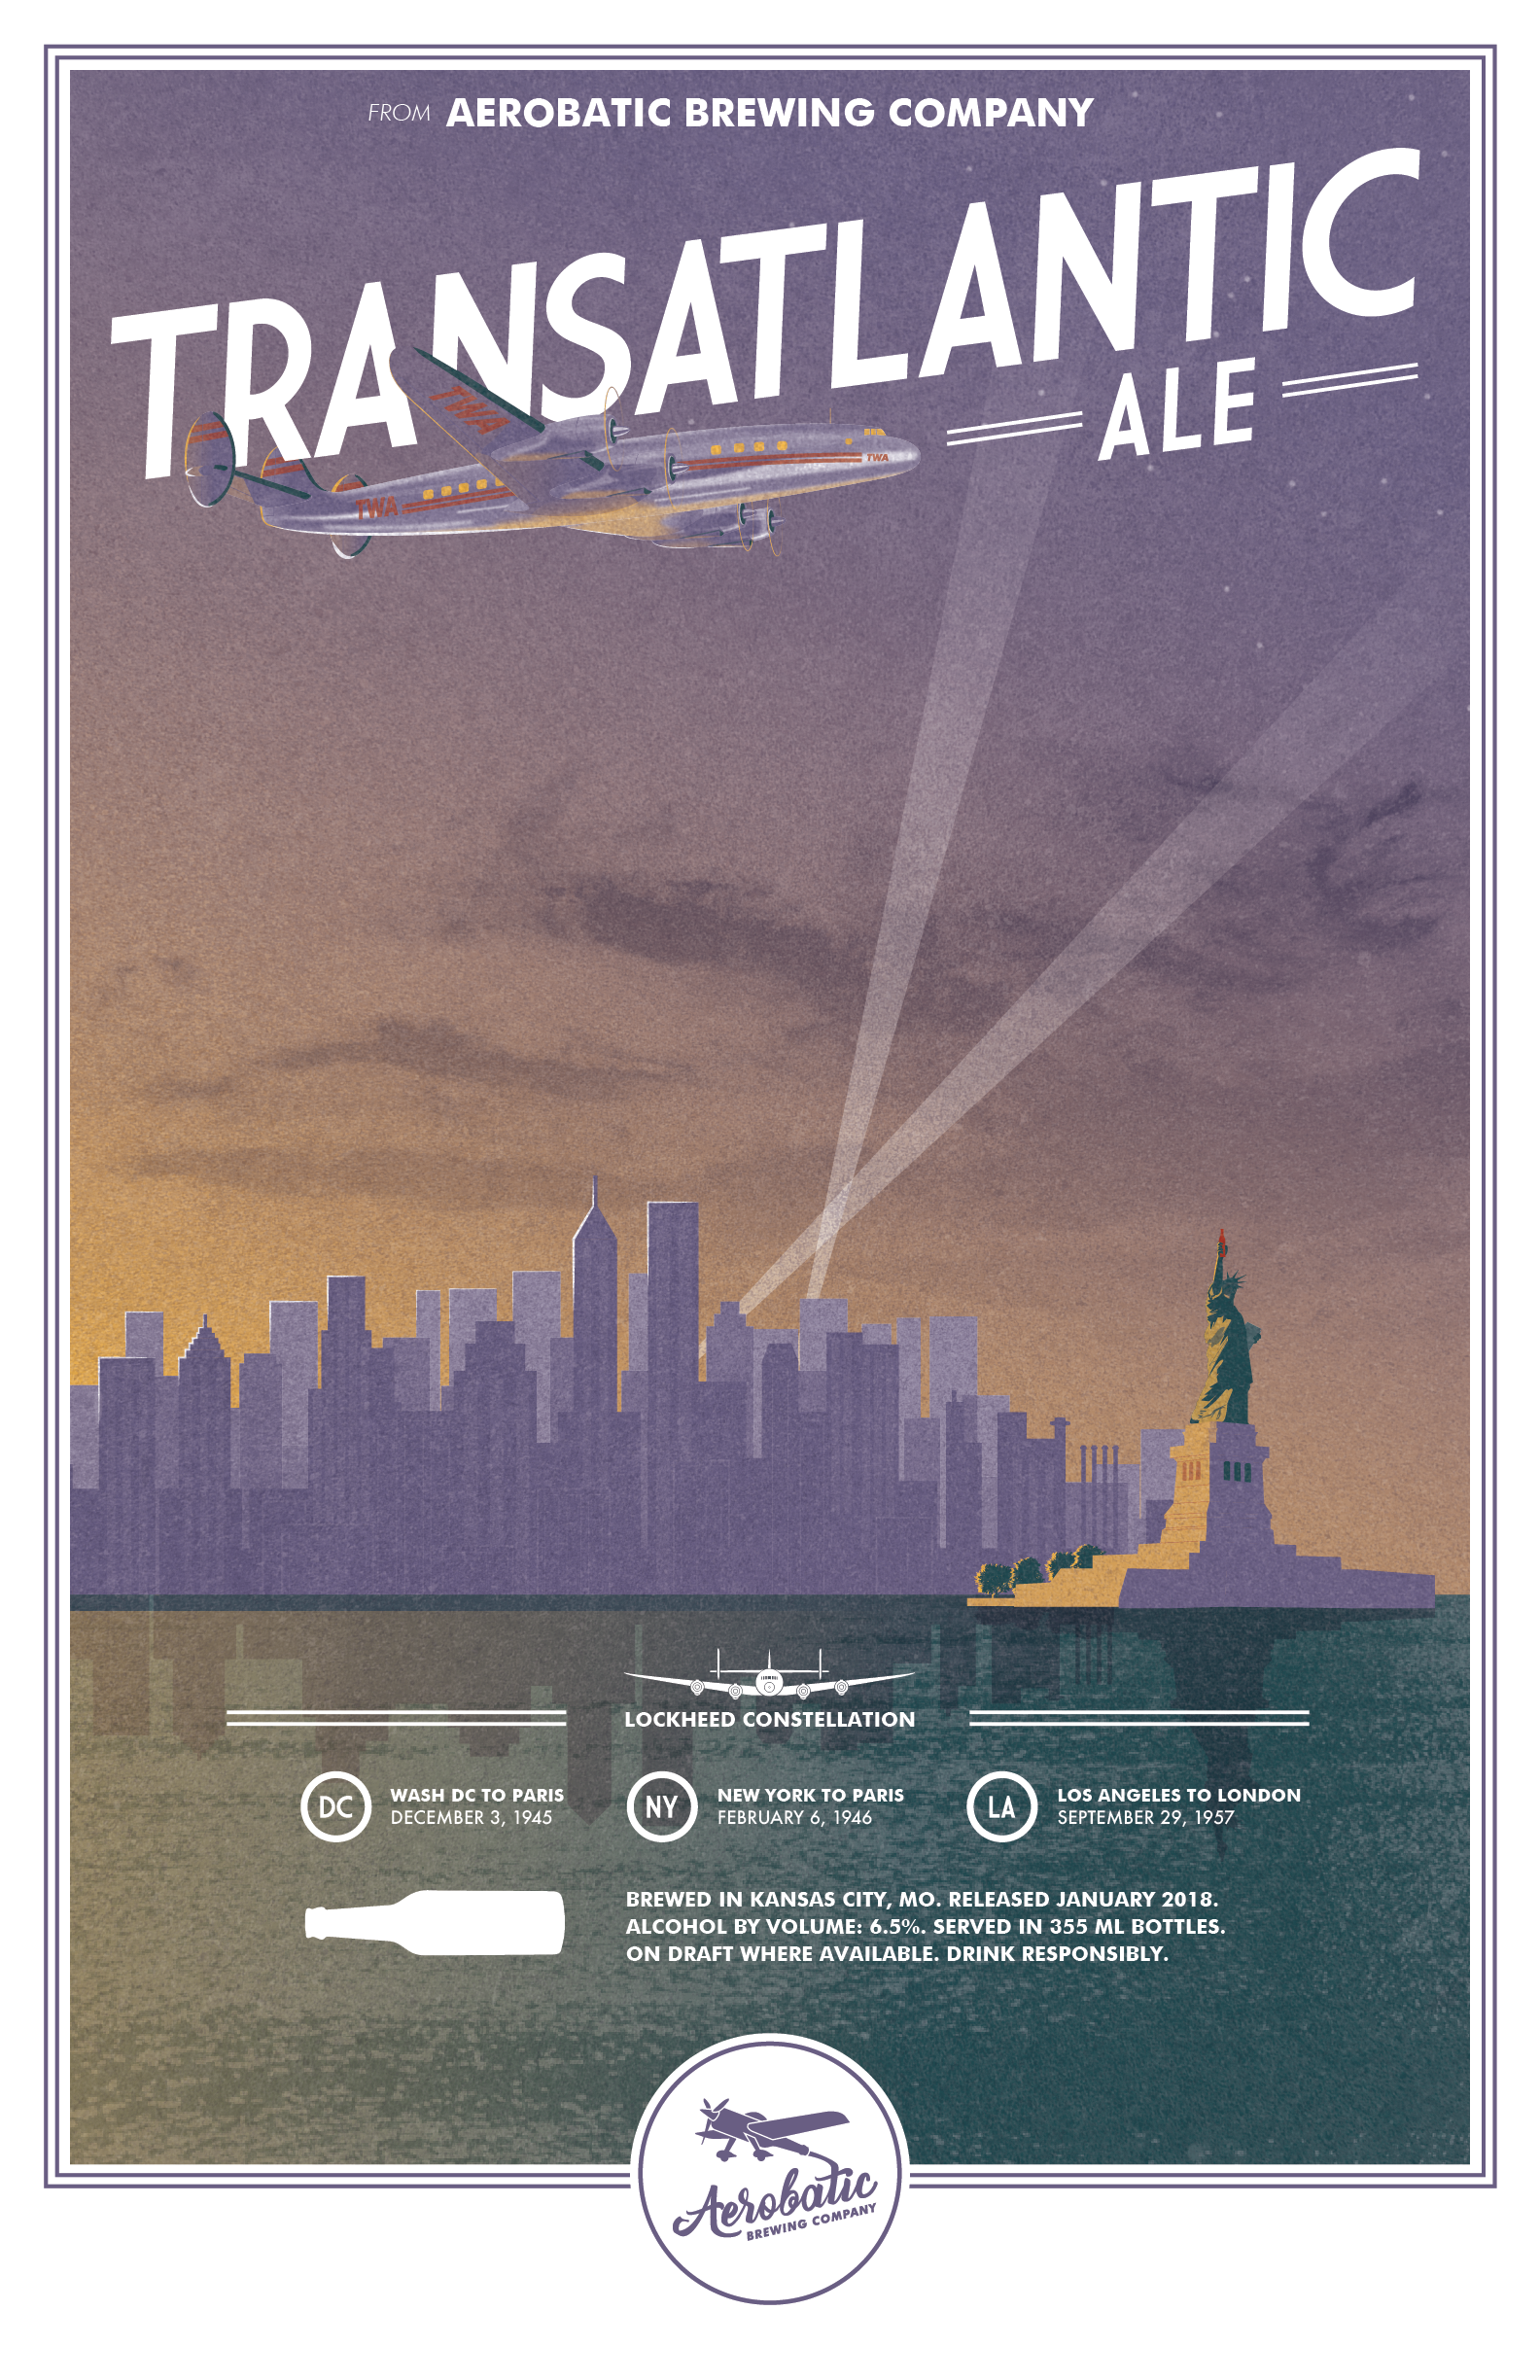 transatlantic-ale-aerobatic-brewing-company-kyle-dolan-design-illustration.png